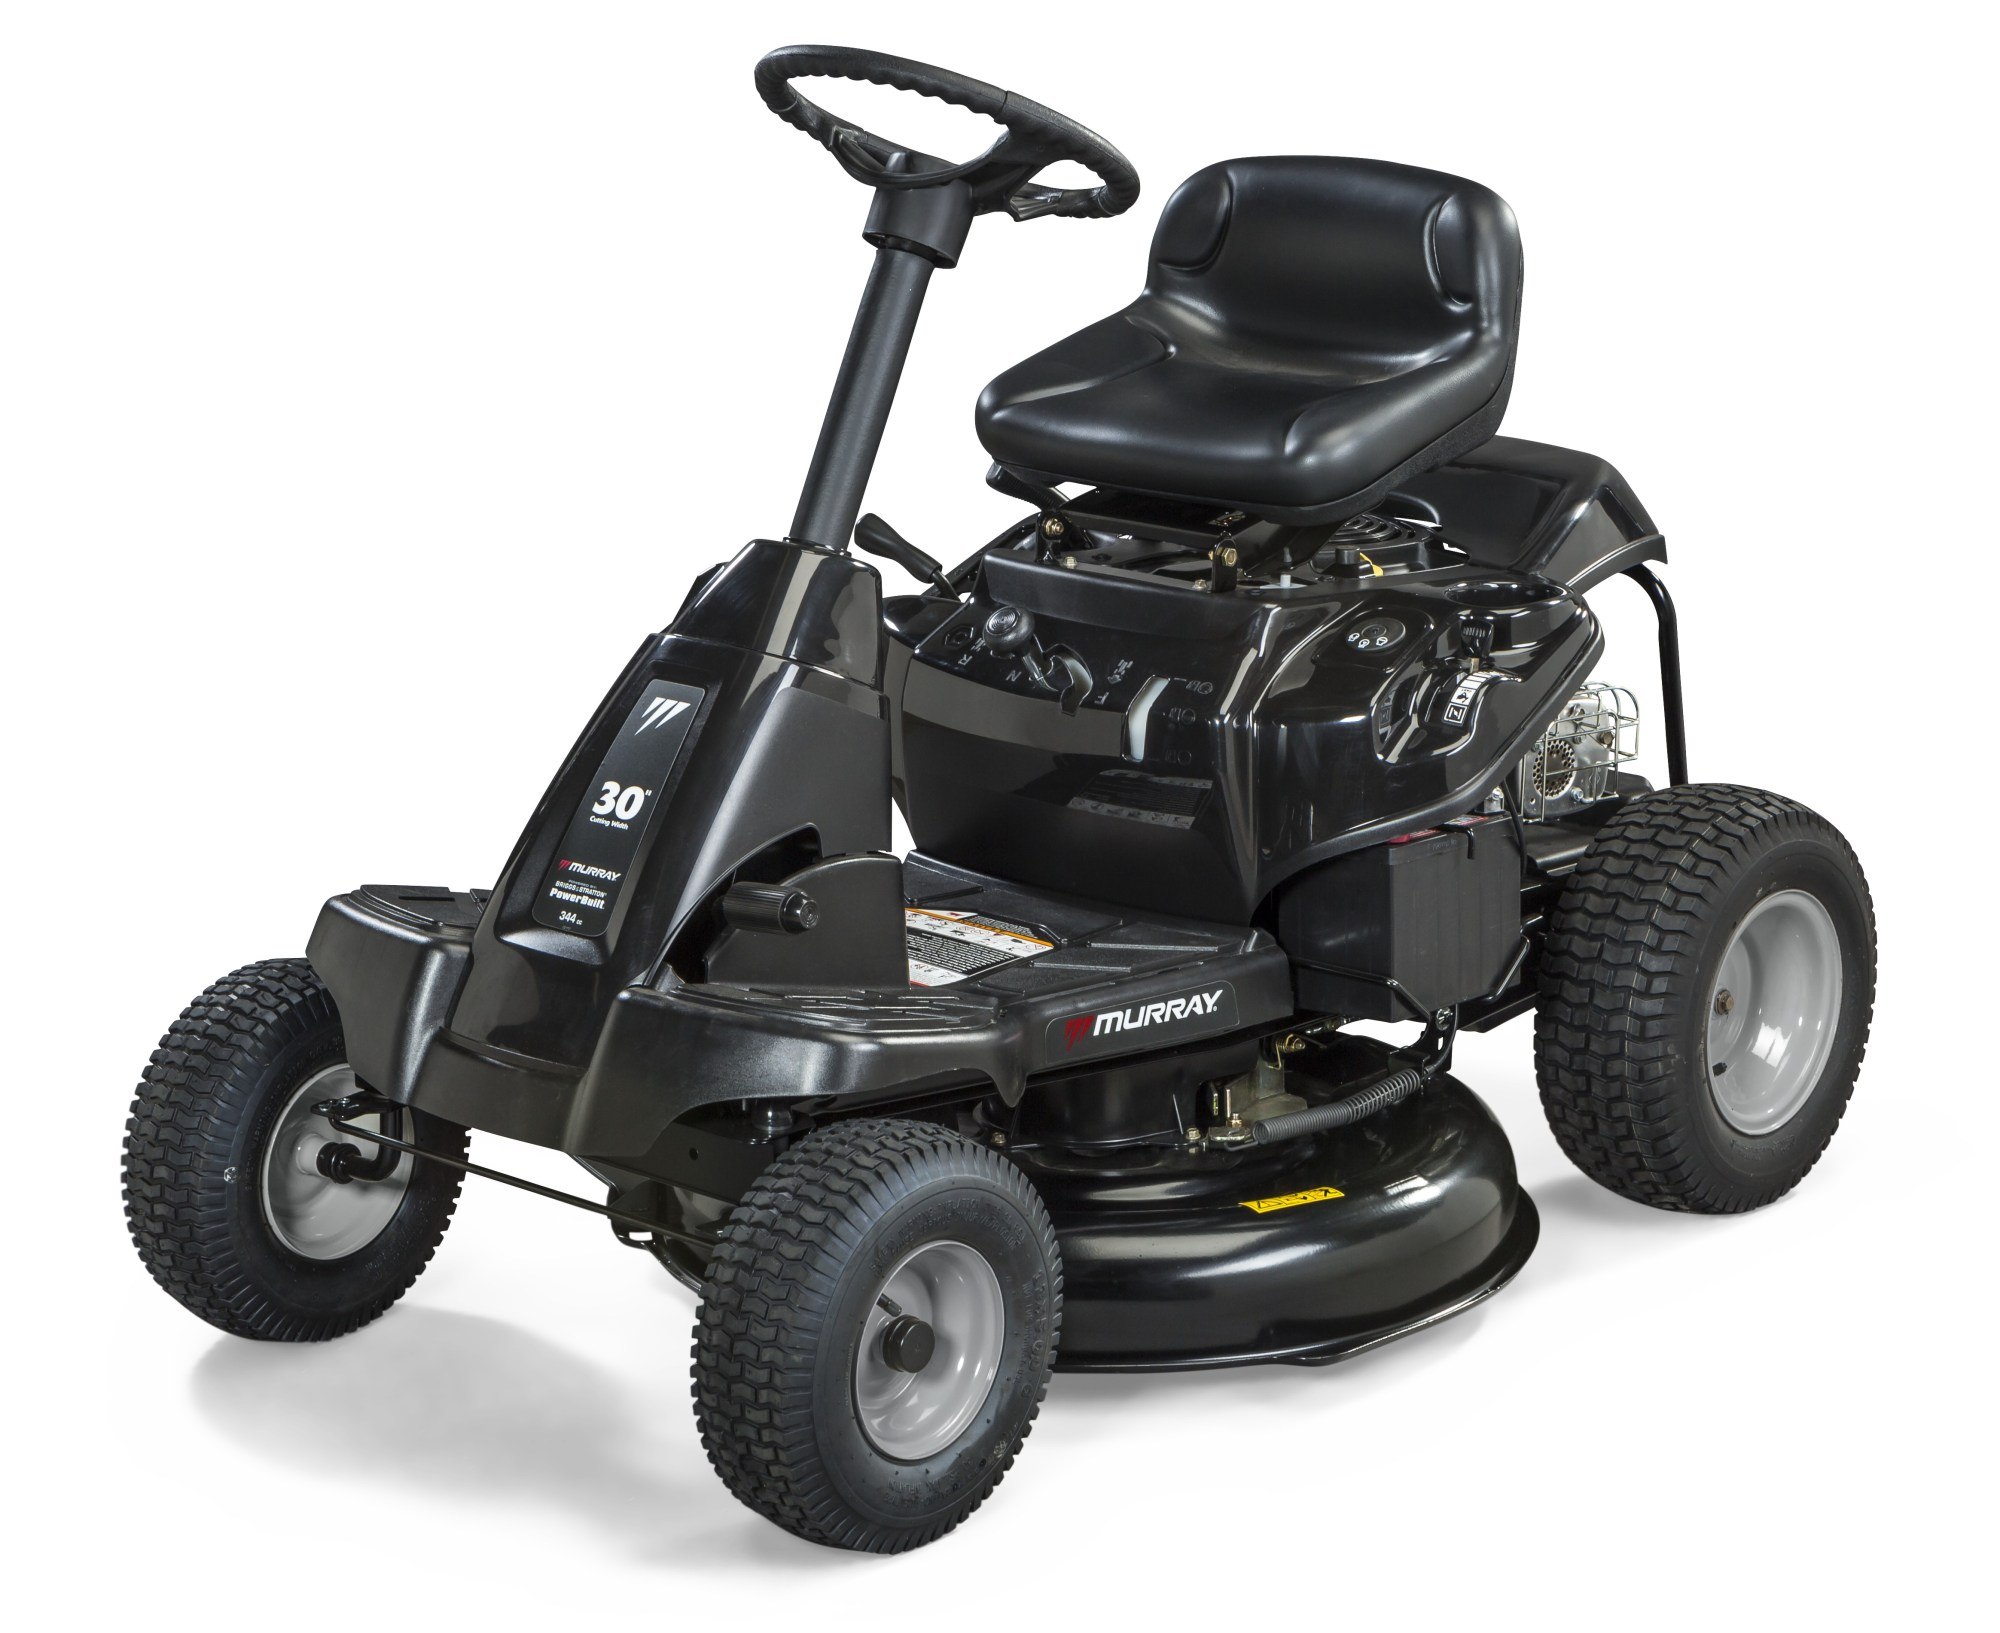 hight resolution of murray 30 10 5 hp riding mower with briggs and stratton powerbuilt engine walmart com